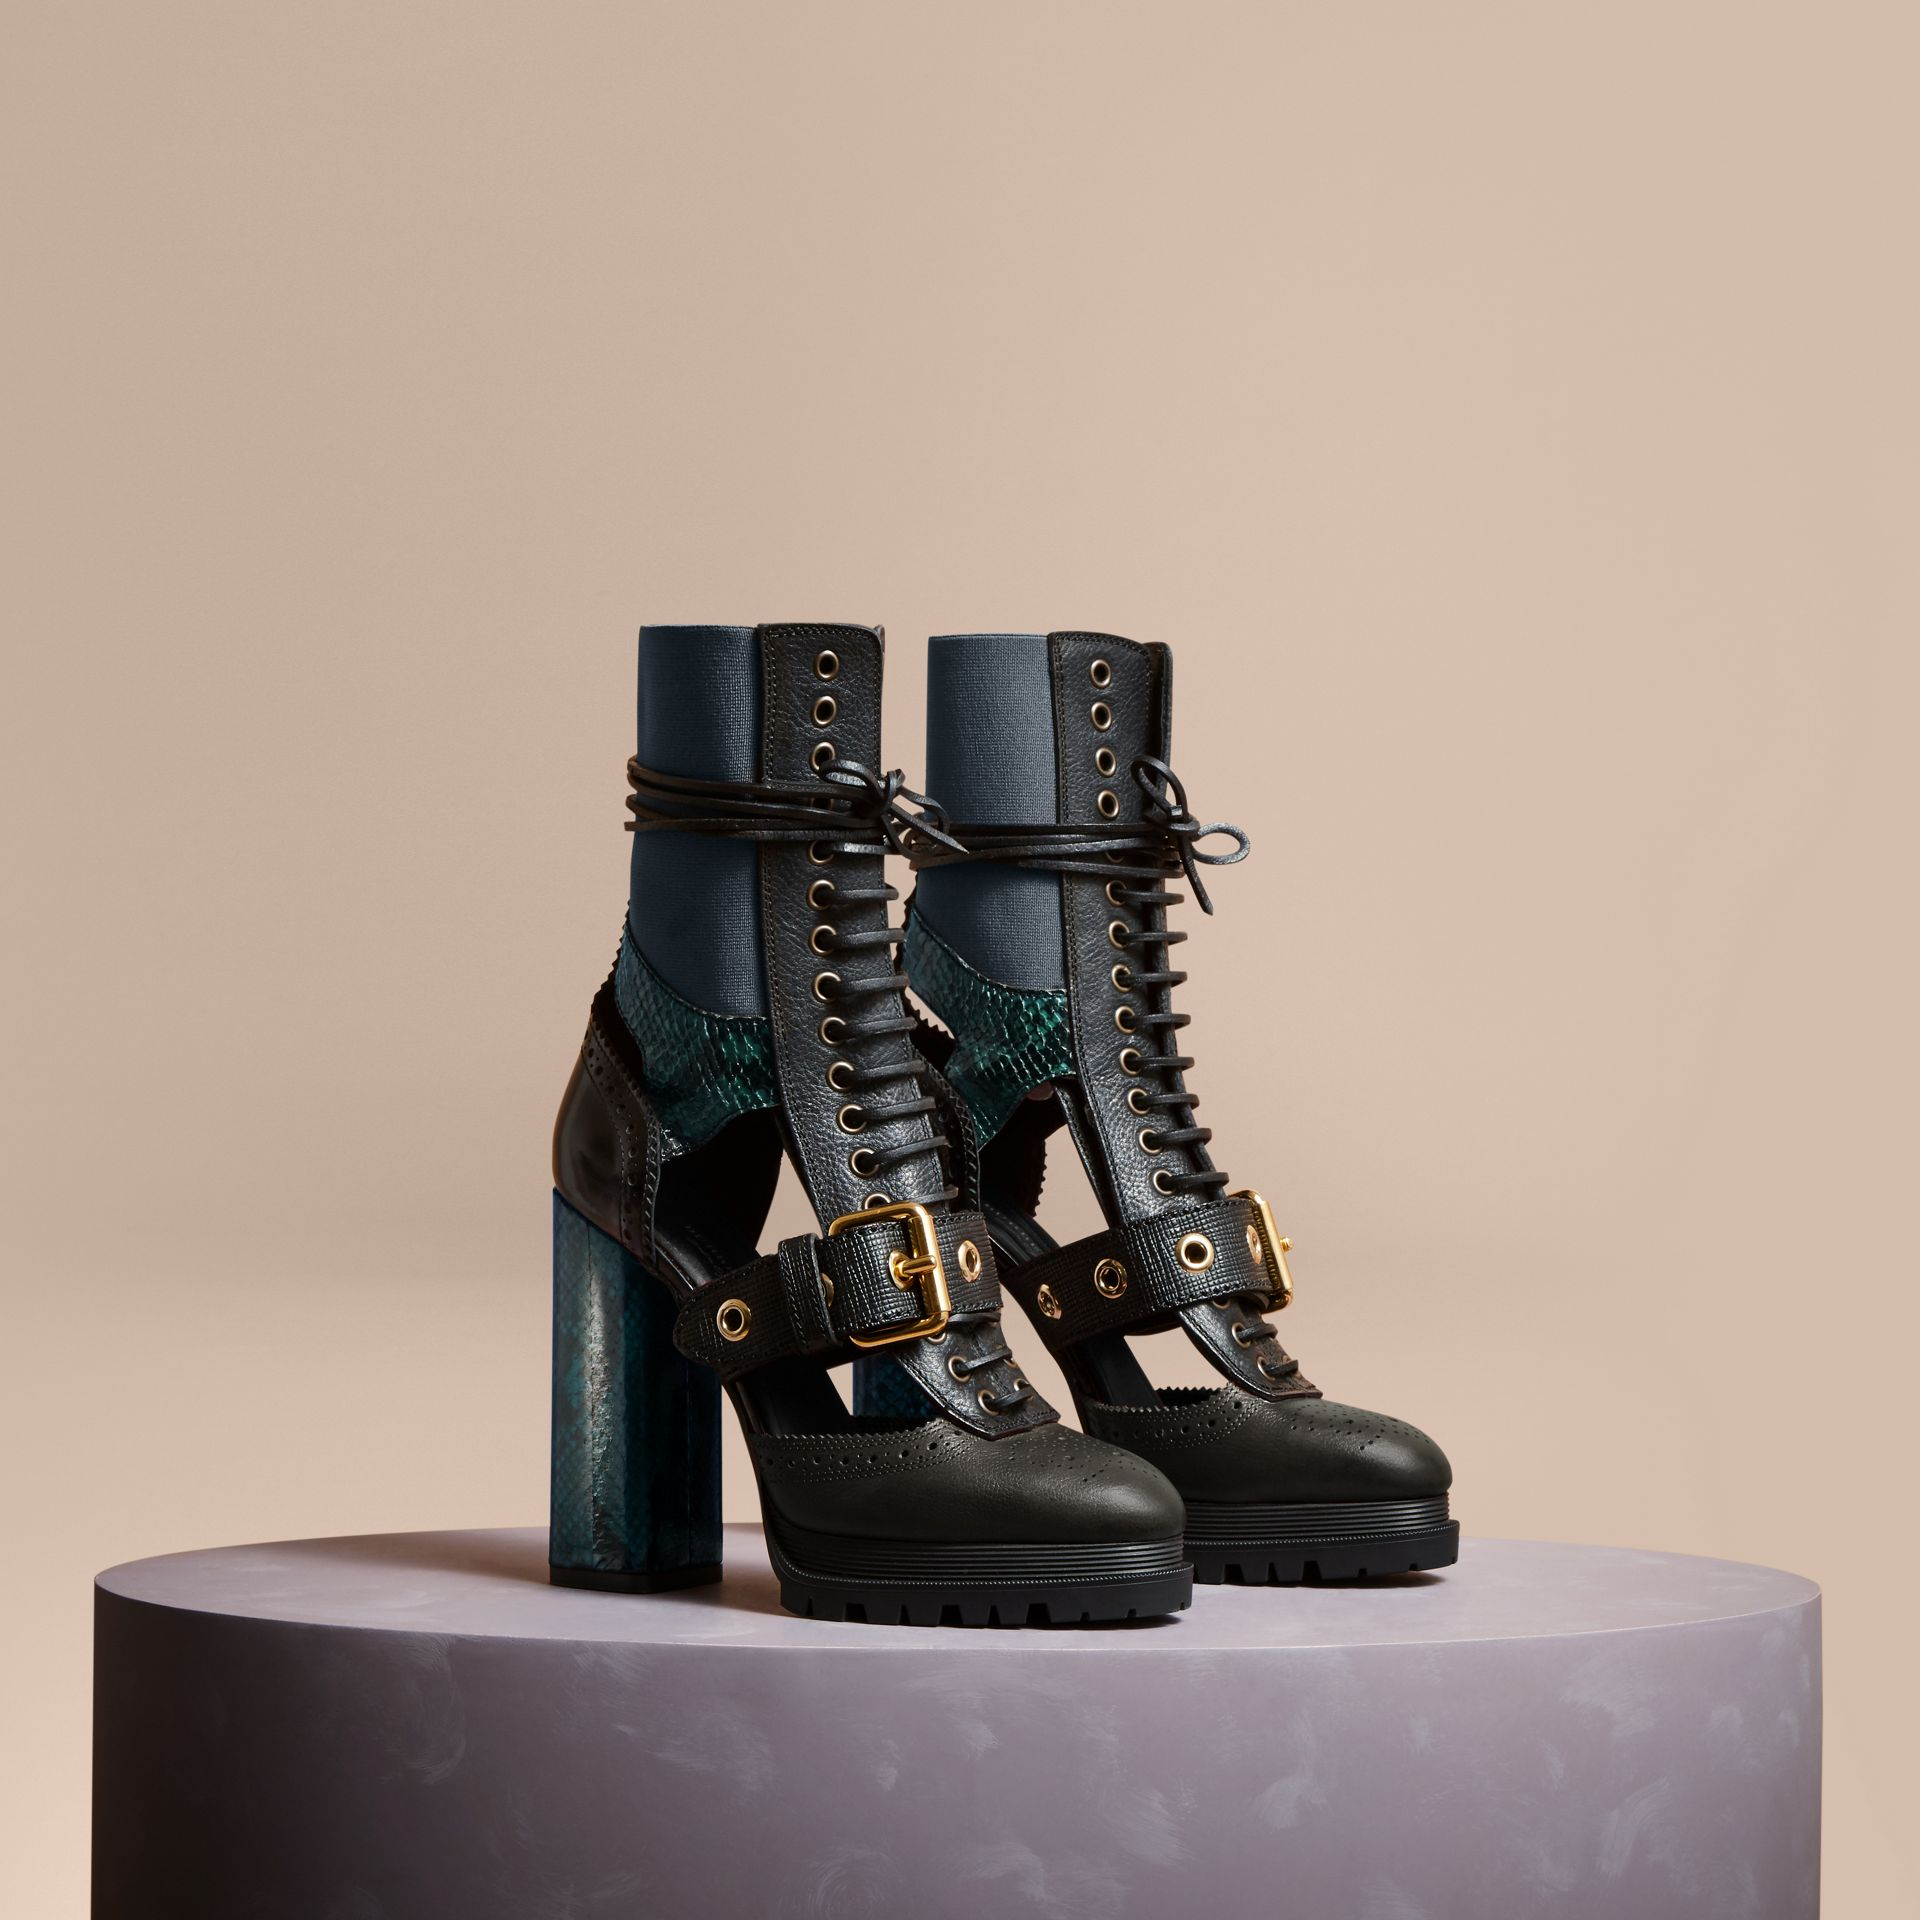 Teal green Leather and Snakeskin Cut-out Platform Boots Teal Green - gallery image 1